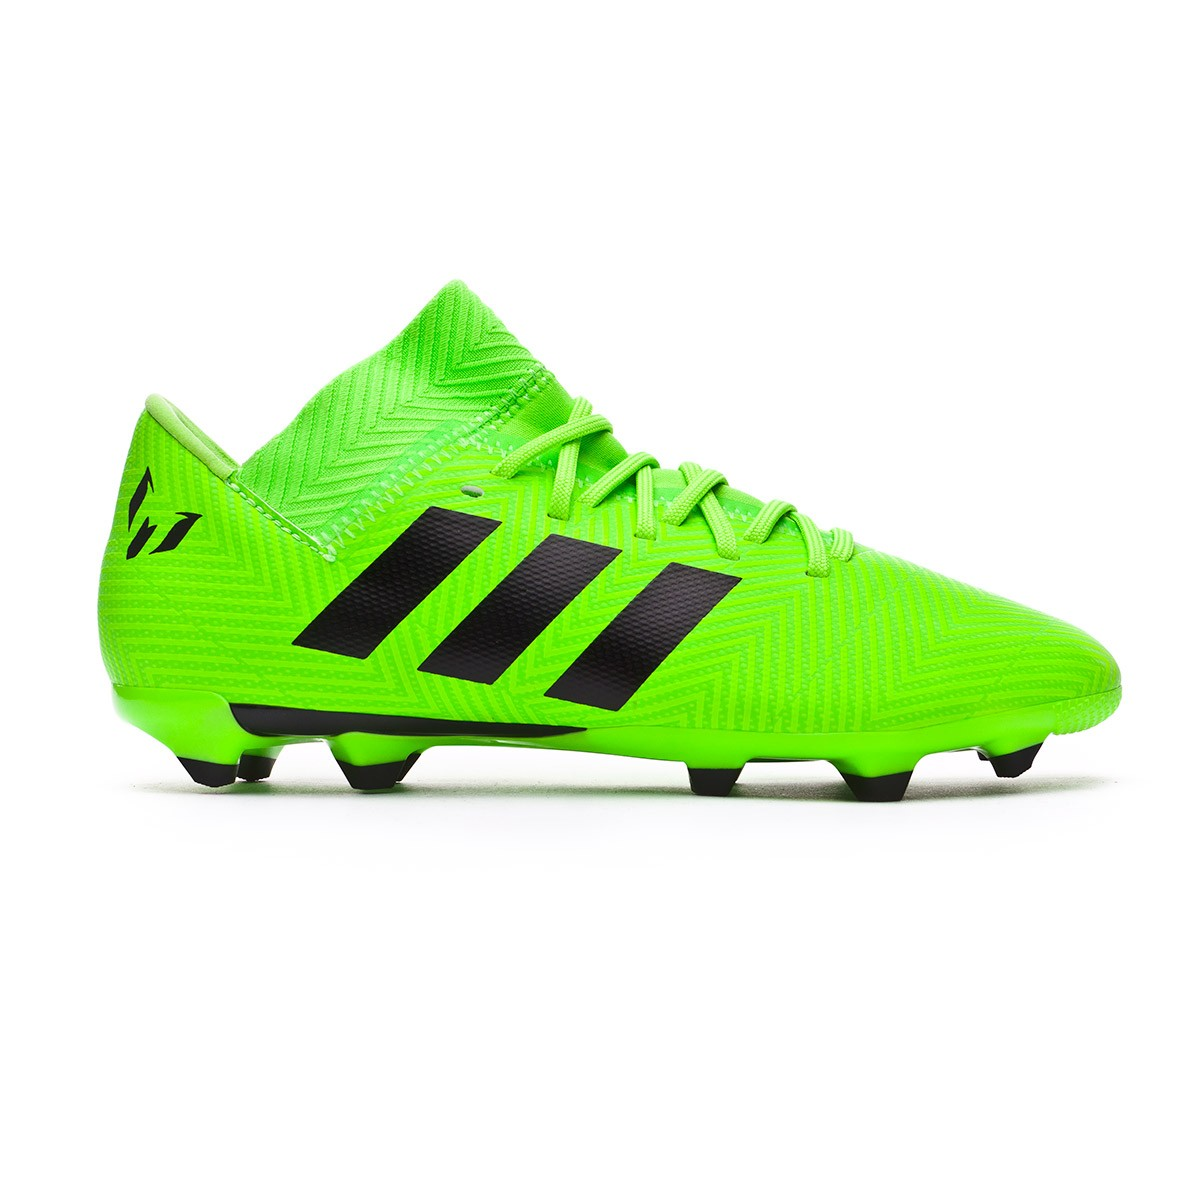 2cca4bdd62bd Football Boots adidas Kids Nemeziz Messi 18.3 Solar green-Black - Football  store Fútbol Emotion